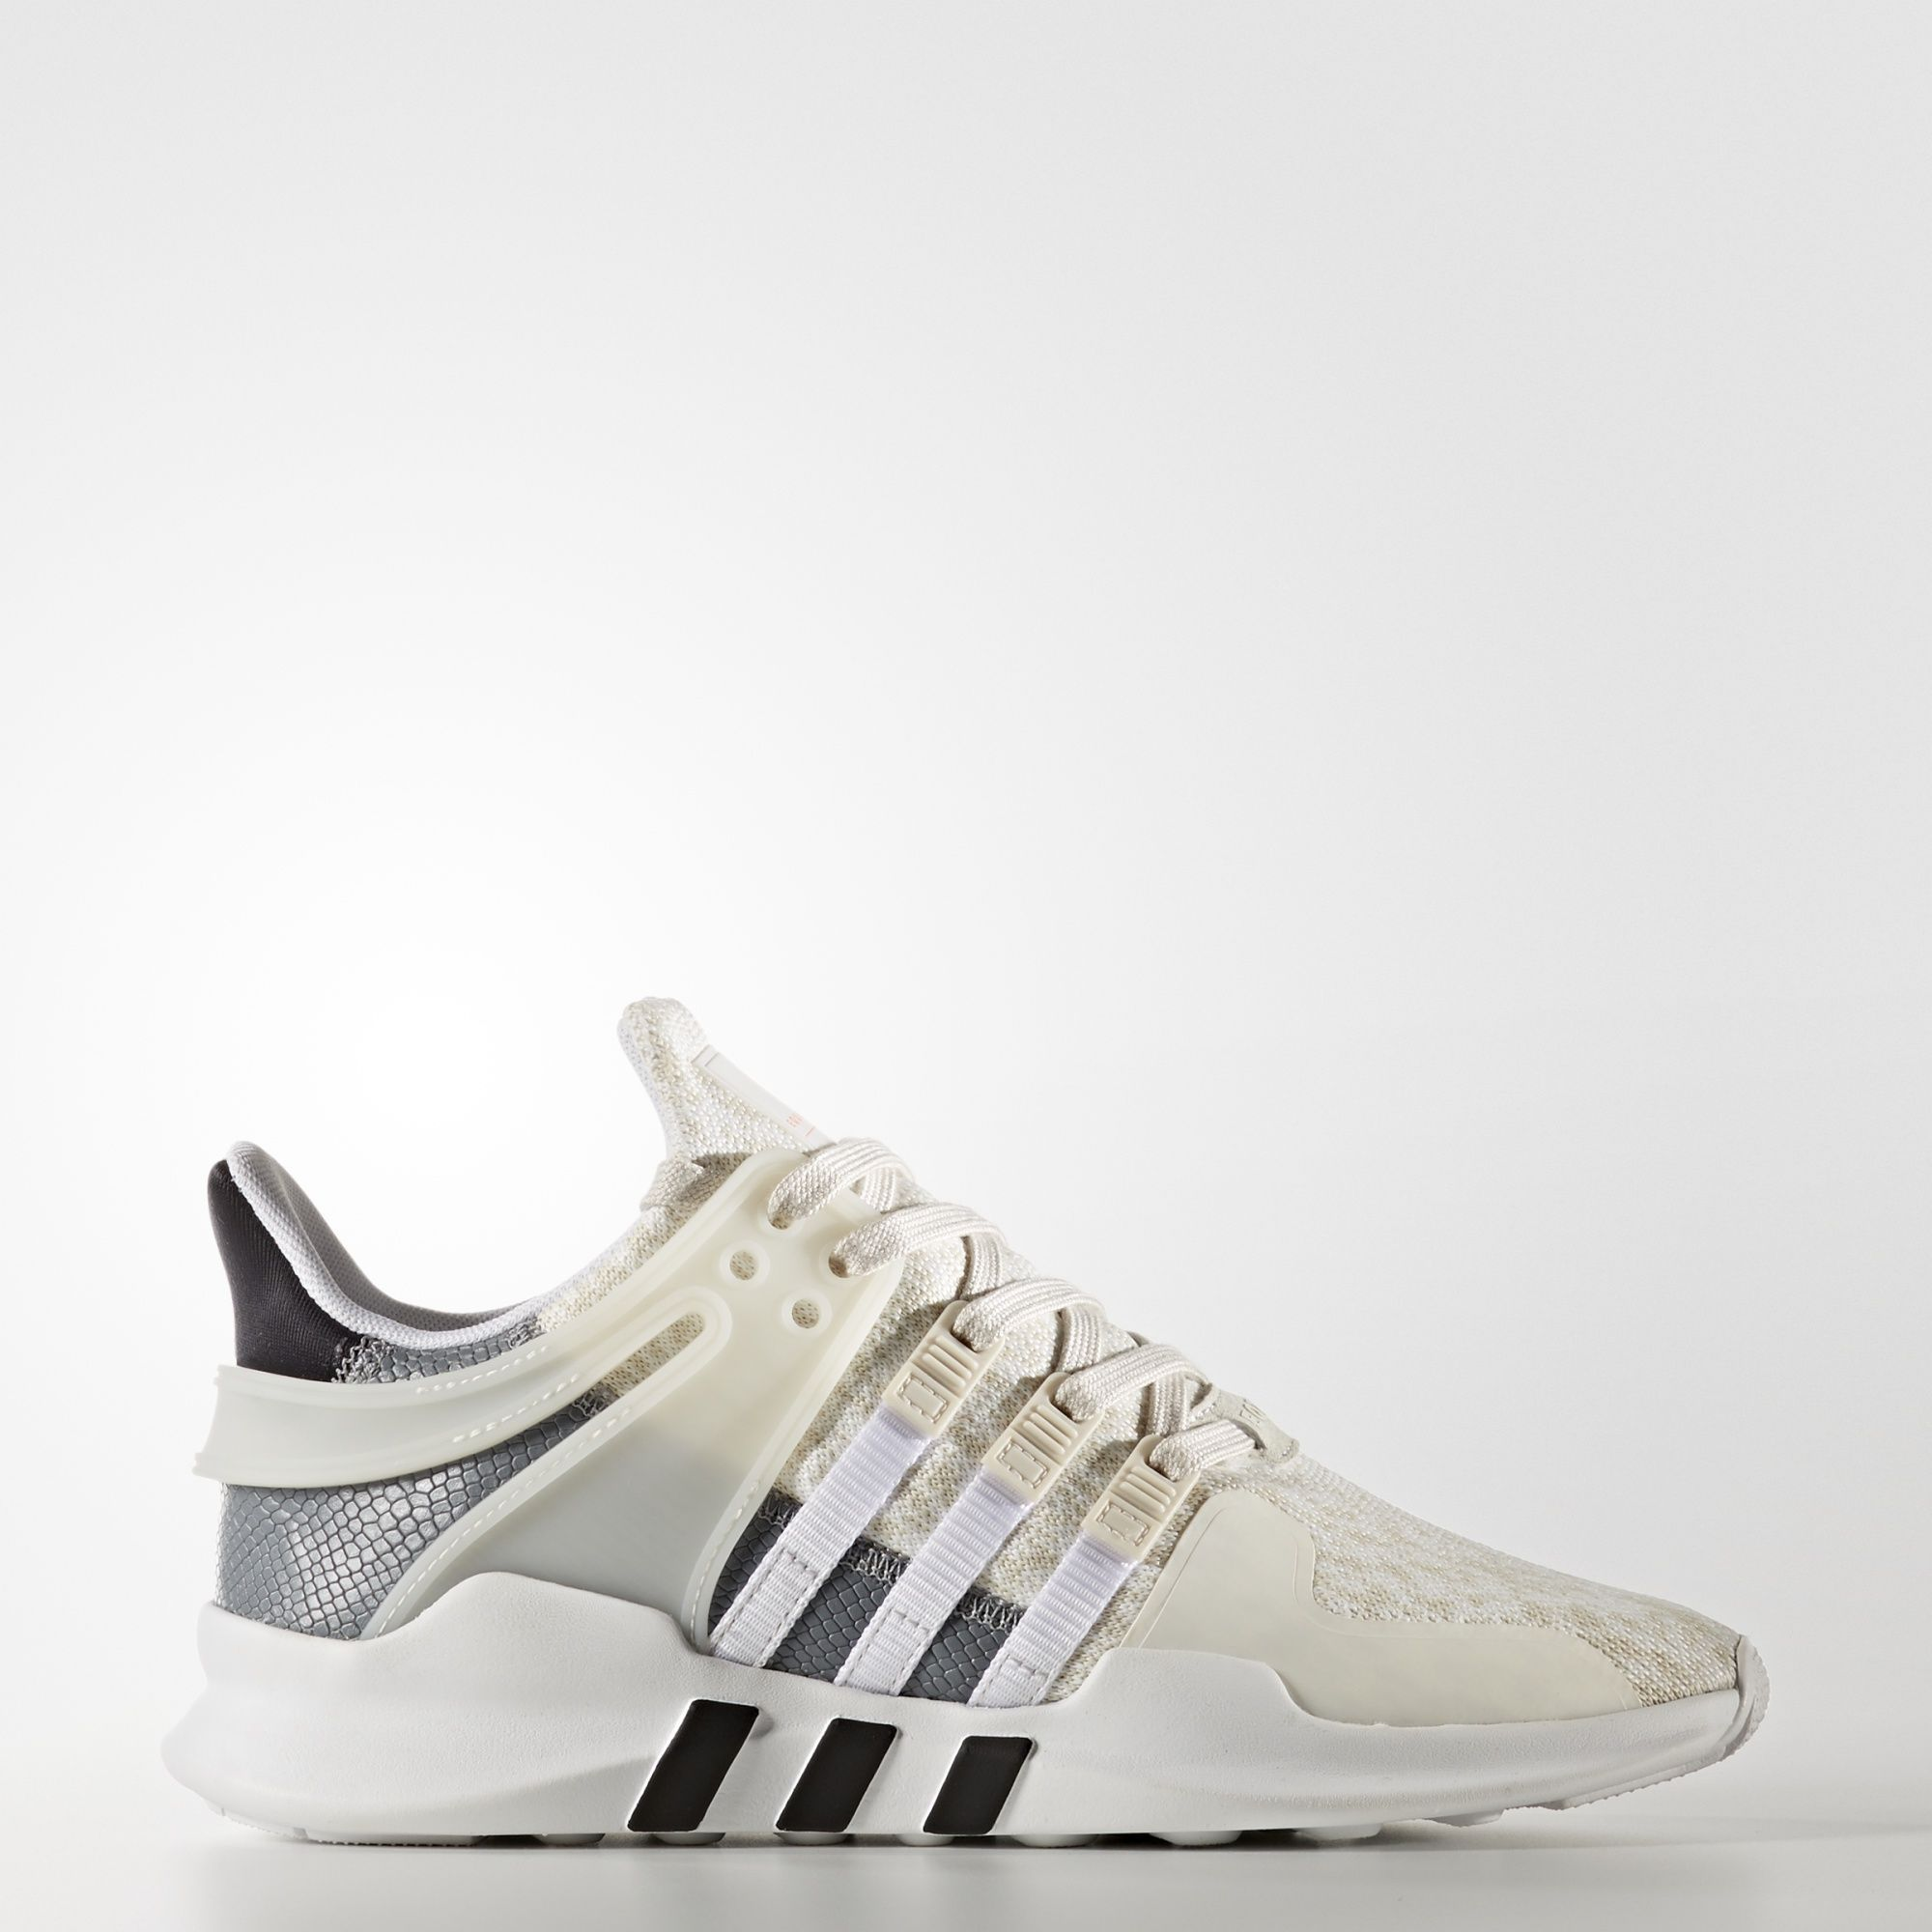 the latest 882b0 f540a adidas - EQT Support ADV Shoes | Clothes | Adidas shoes ...